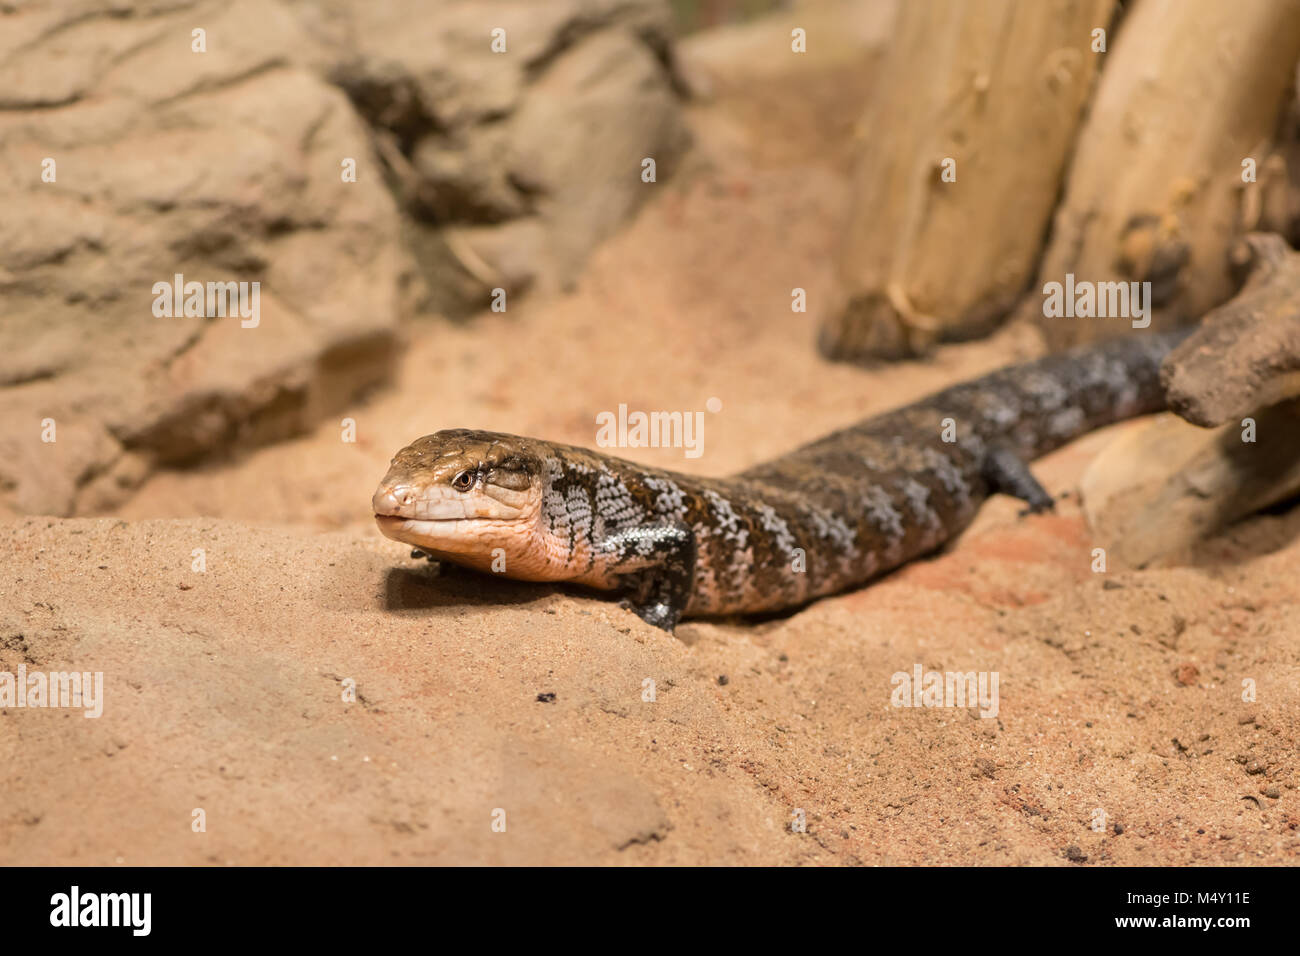 A blue tongued australian lizard in a zoo - Stock Image